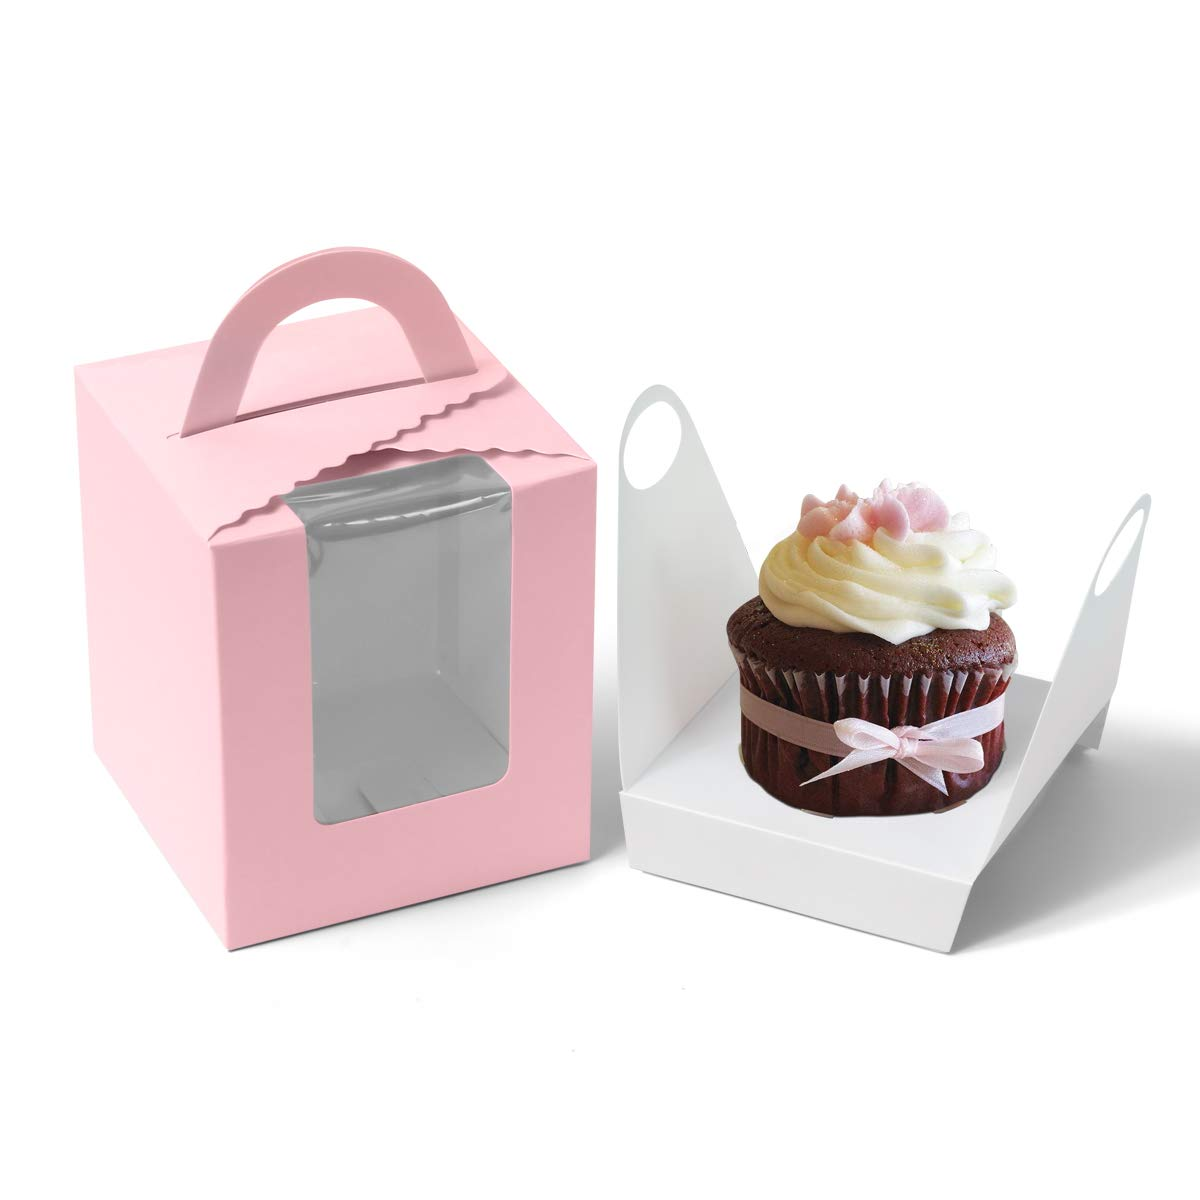 Single Cupcake Boxes Soundpretty Individual Cardboard Cupcake Box with Inserts Bakery Cupcake Carriers with Window and Handle for Wedding Birthday Parties